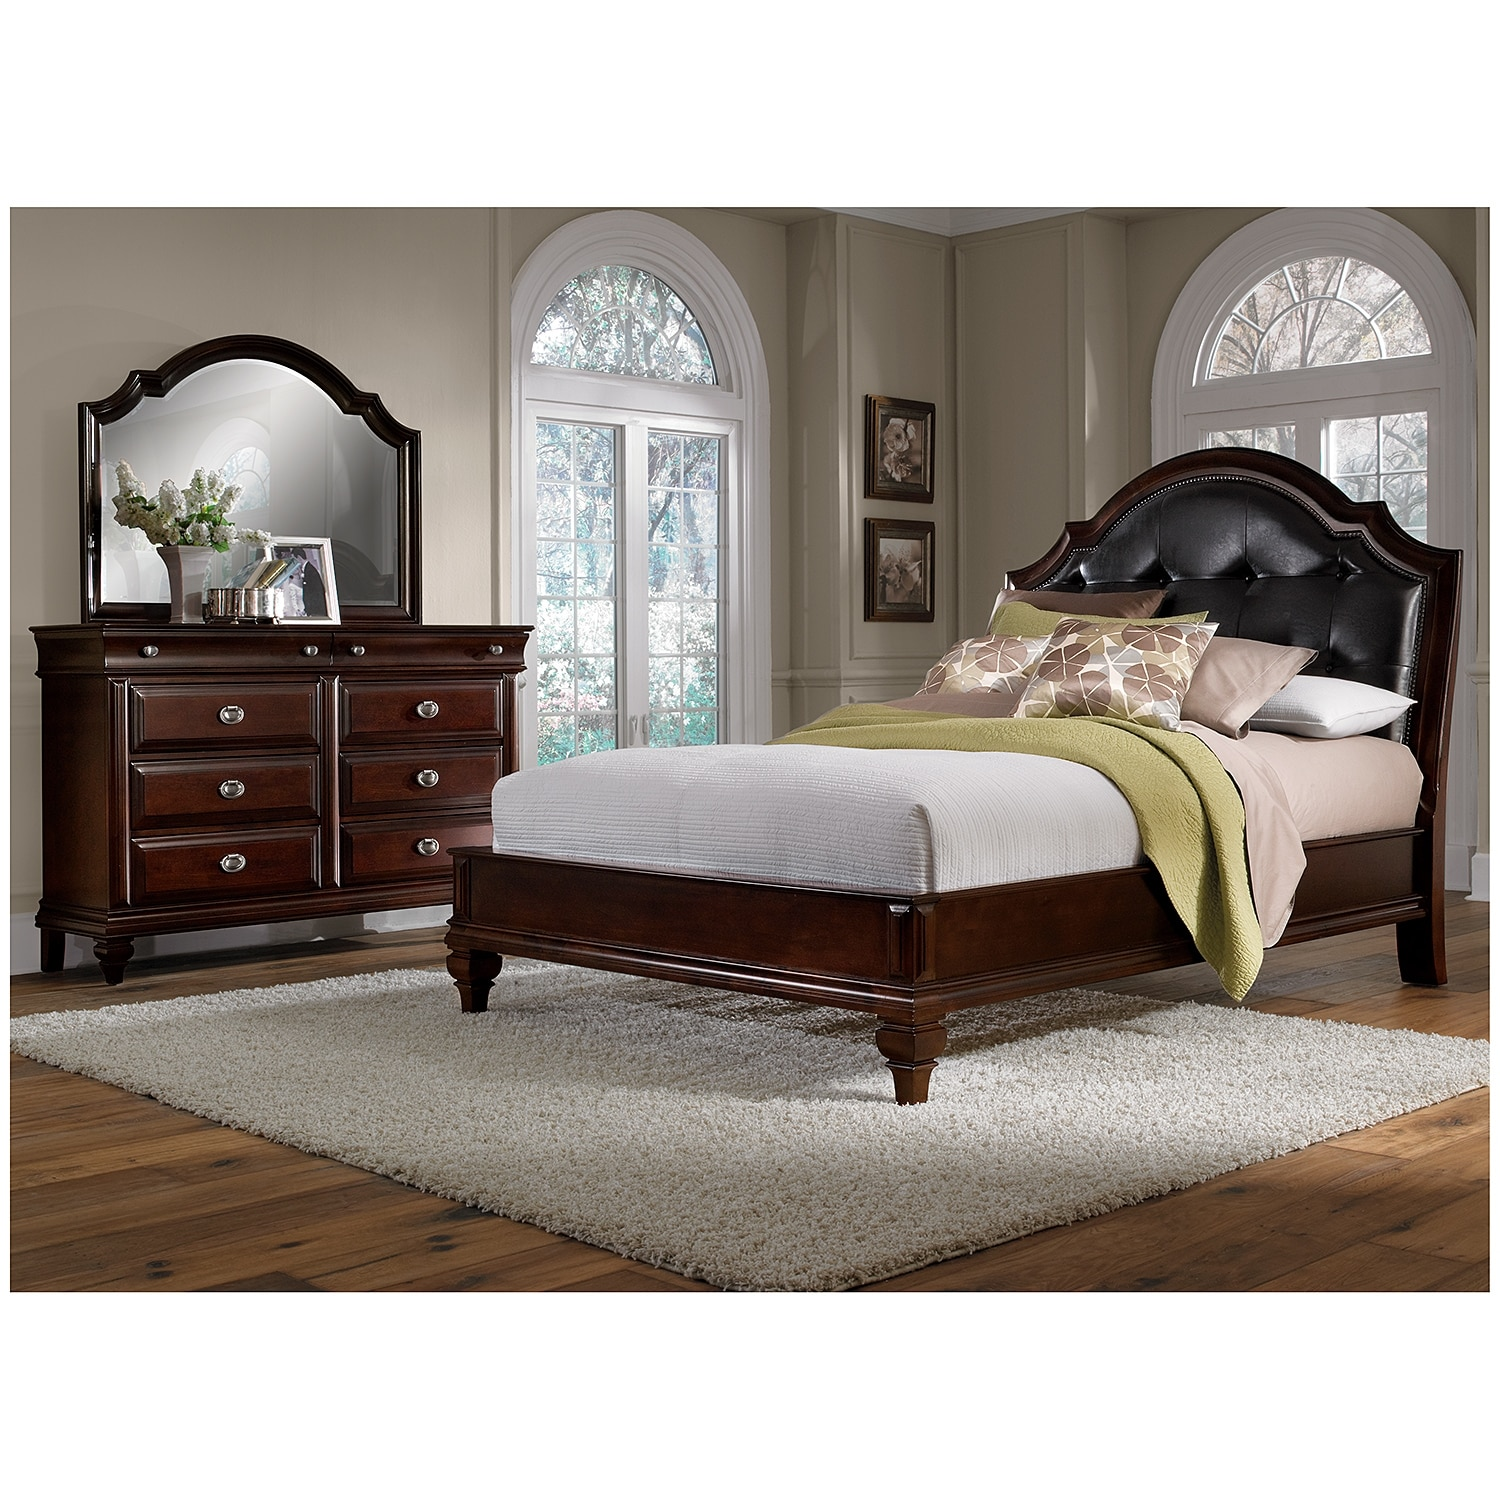 Manhattan Piece Queen Bedroom Set Cherry Value City Furniture - Manhattan bedroom furniture